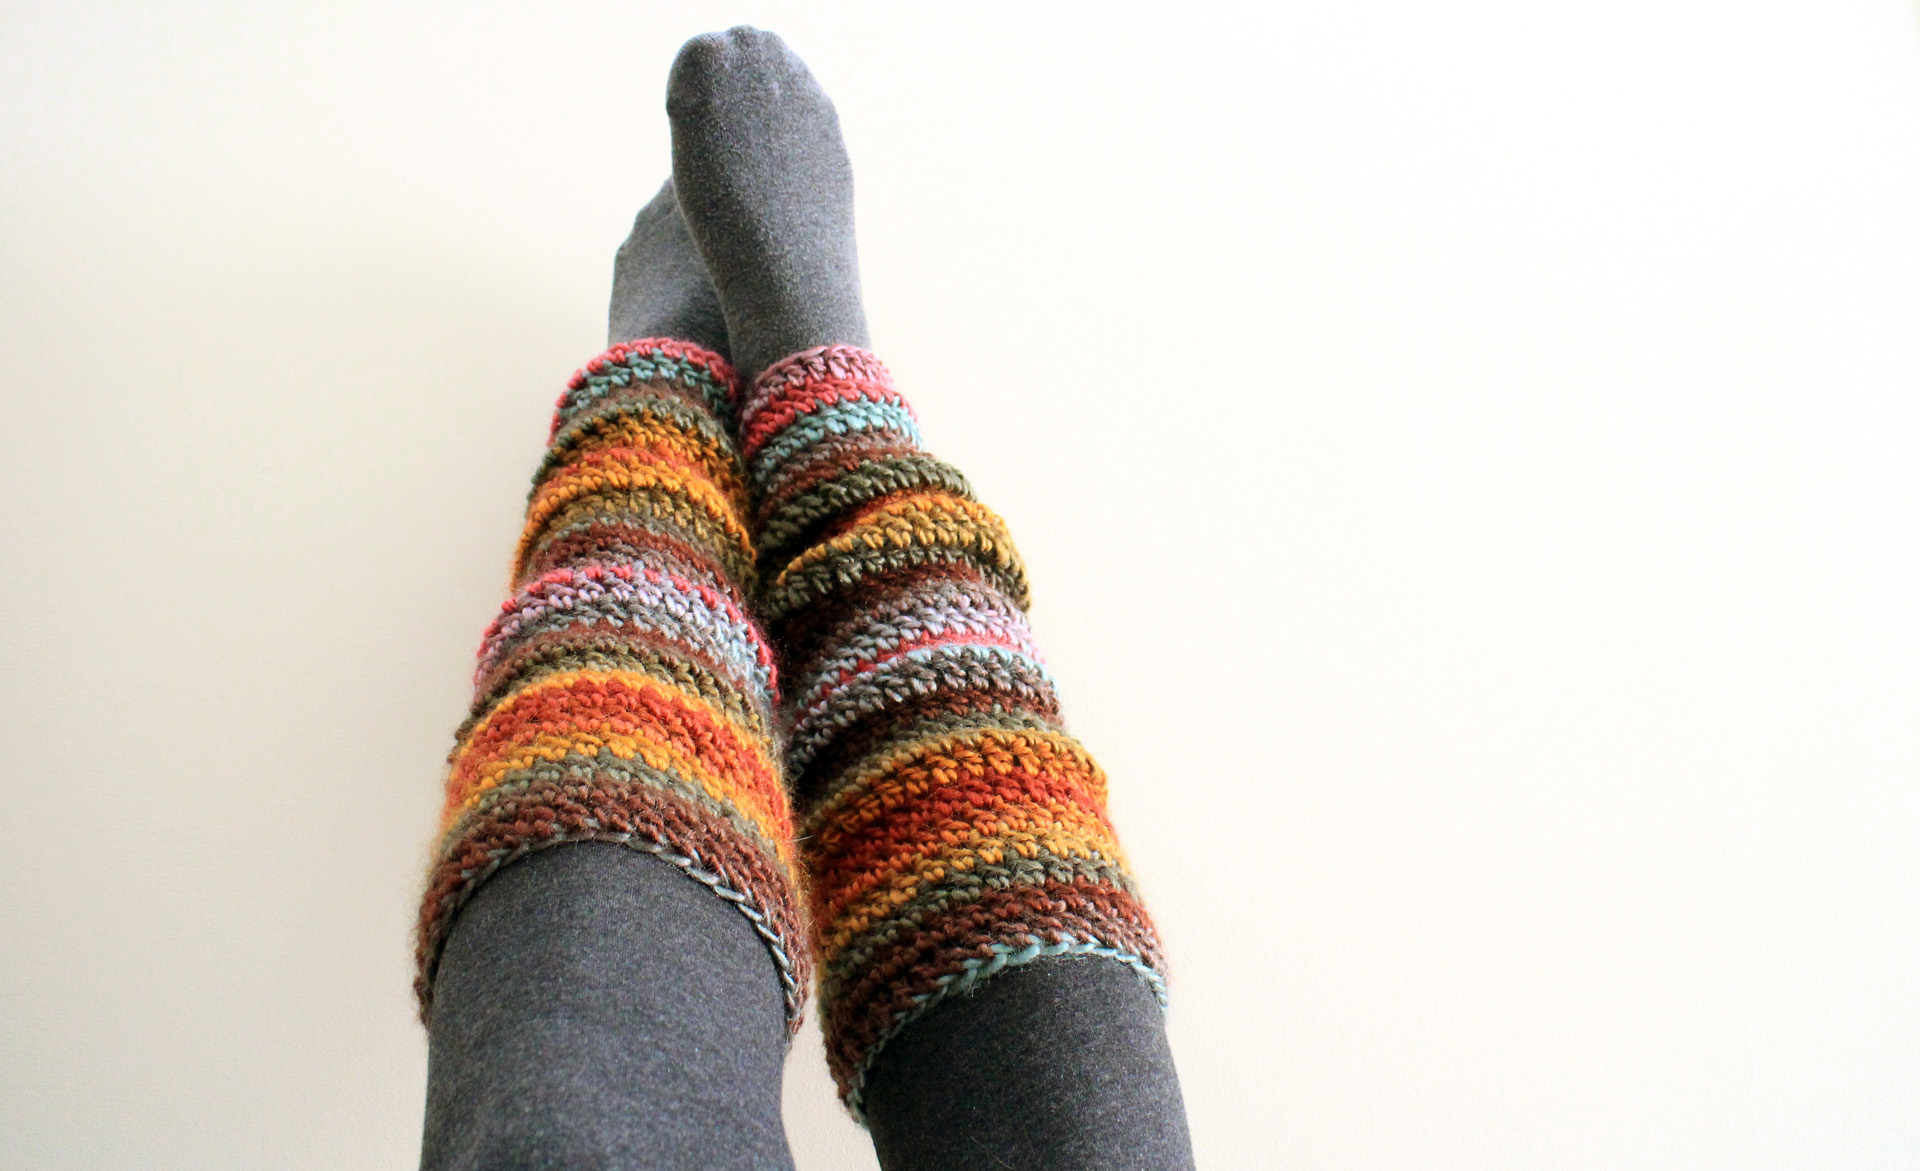 Crochet Free Patterns For Leg Warmers : Beginner Crochet Leg Warmers:Video Tutorial and Free Pattern